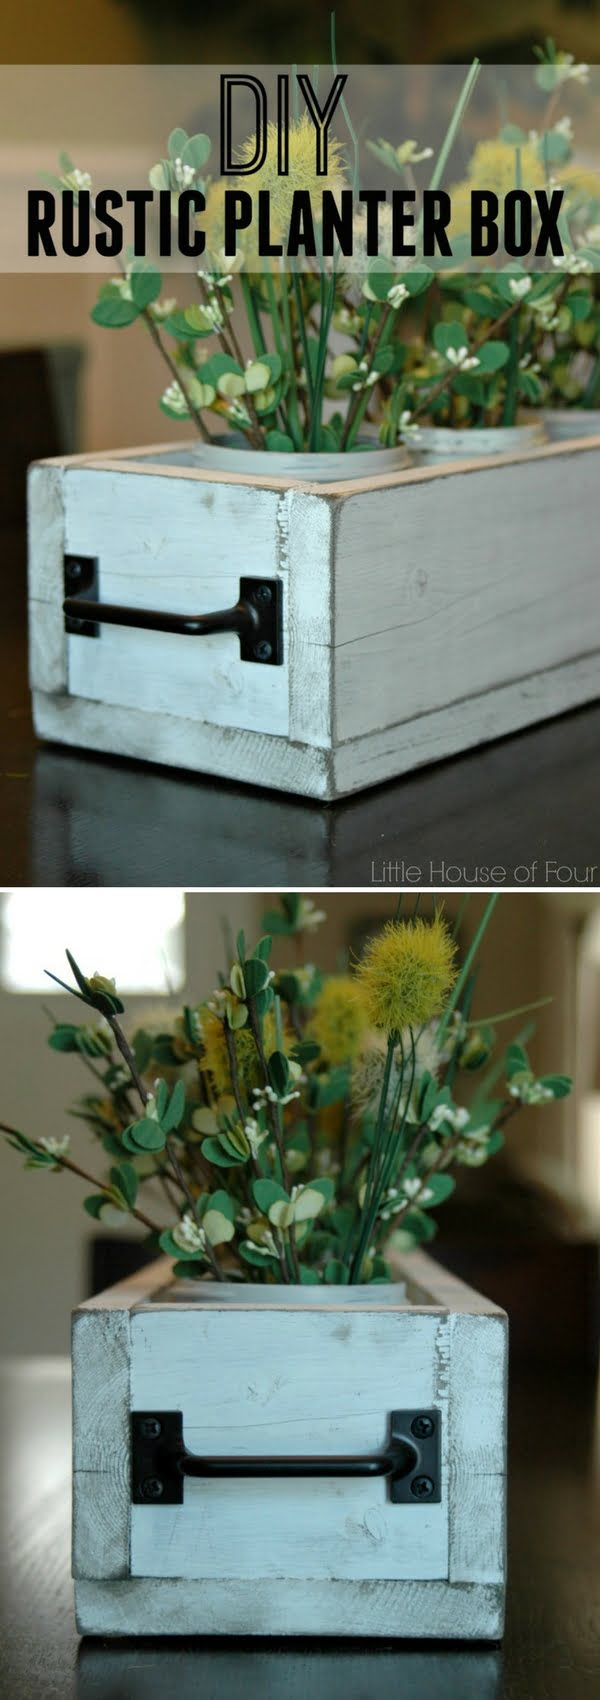 How to make a DIY rustic planter box